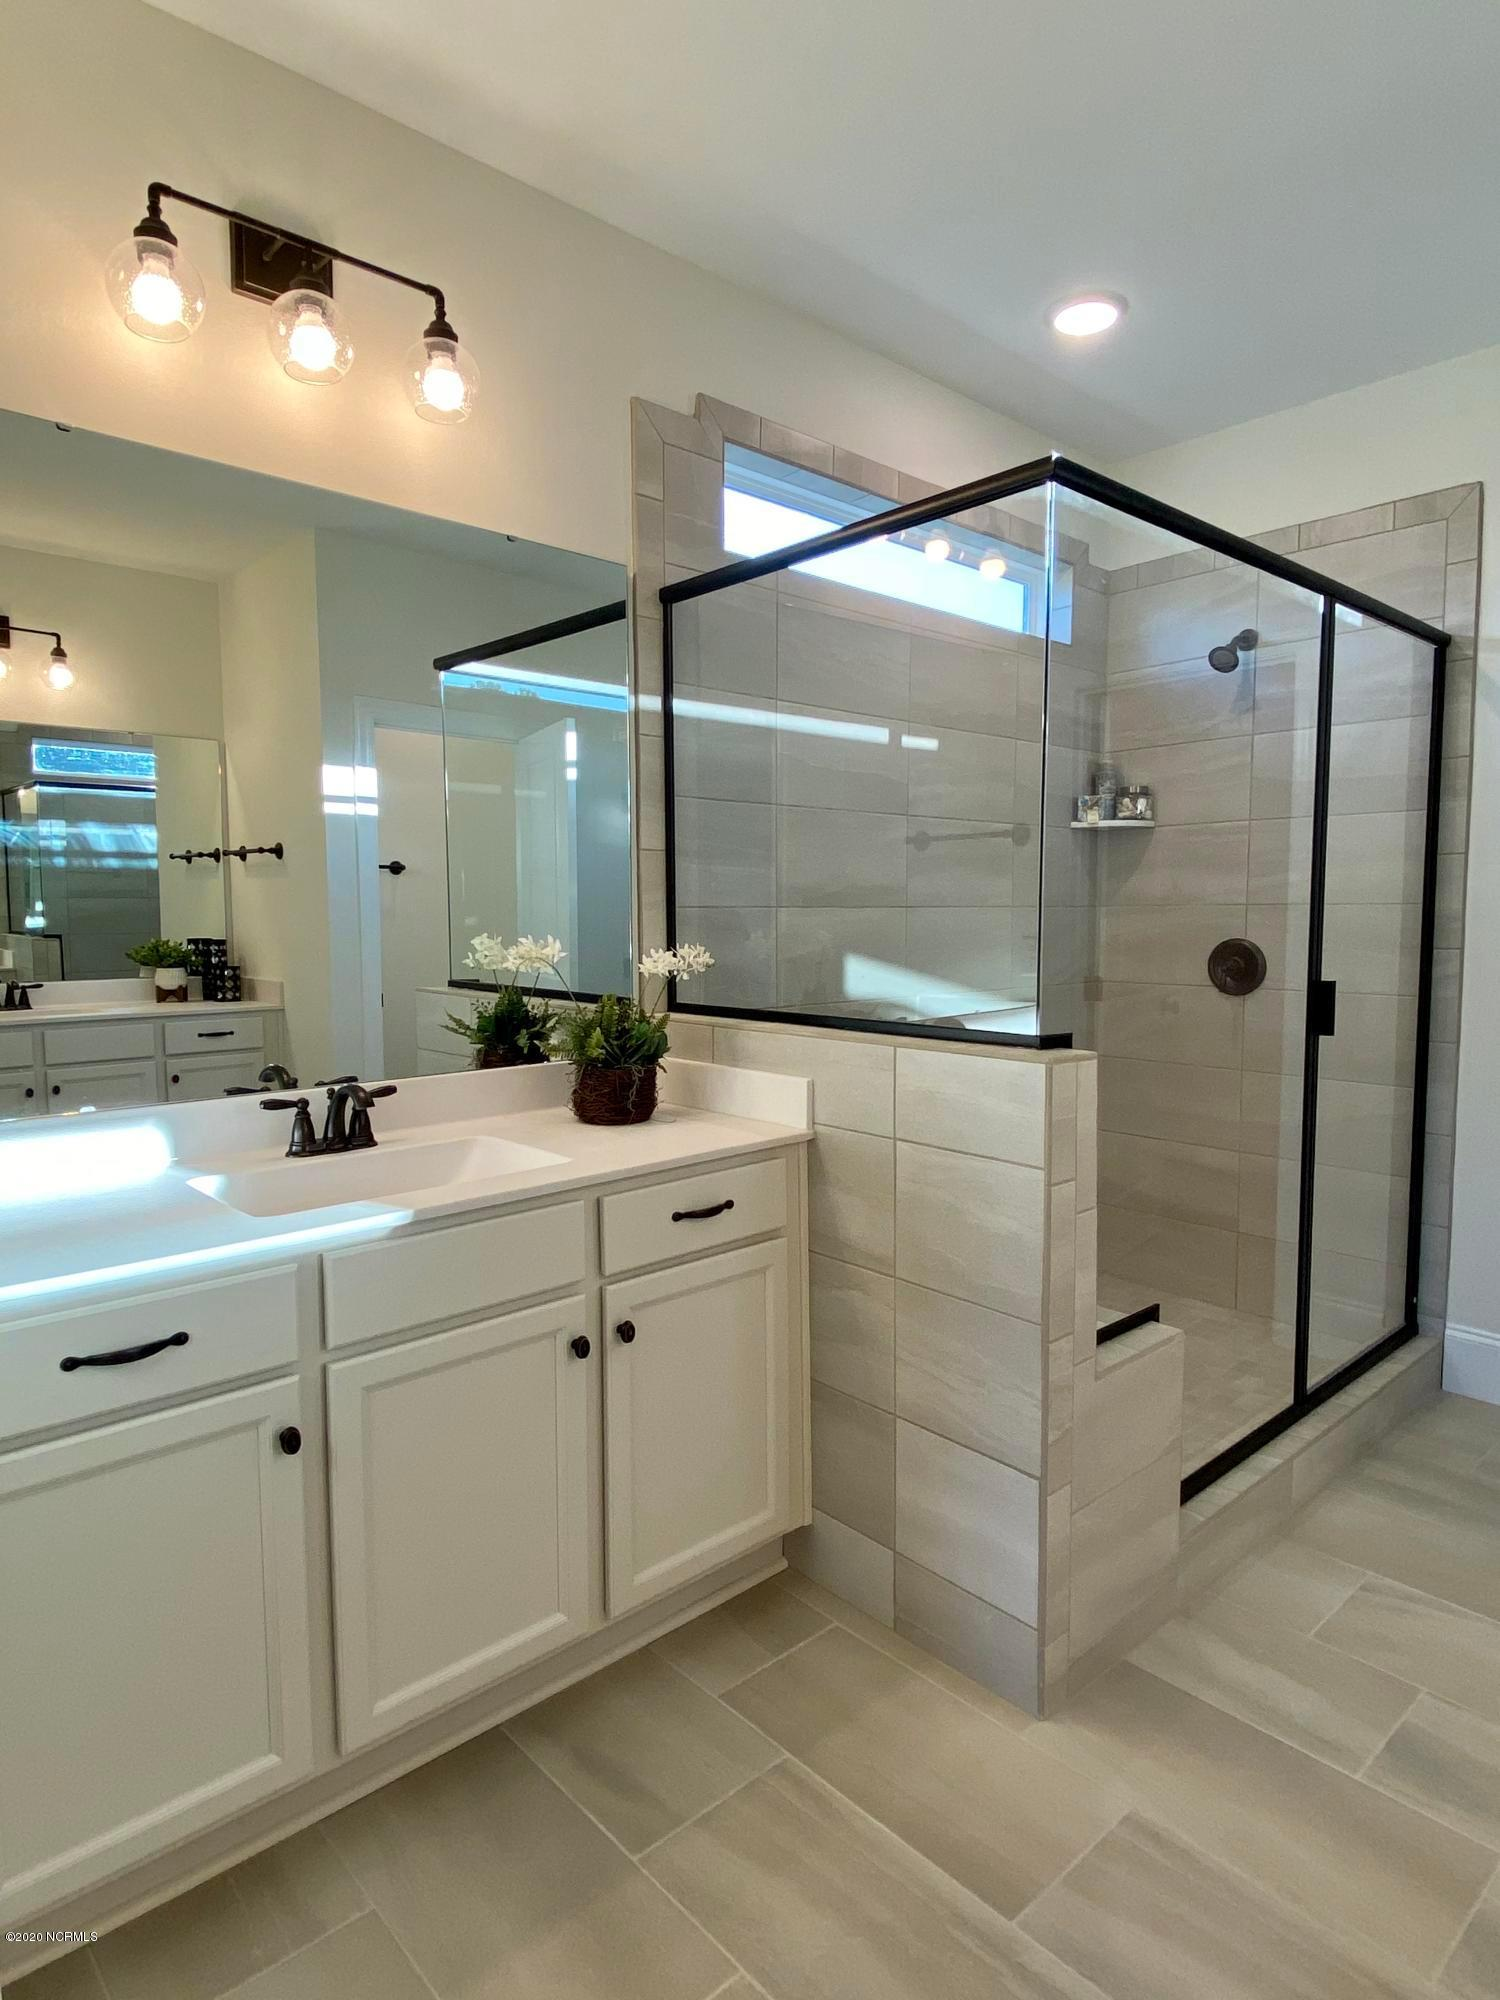 Bathroom featured in the 55 Viona By RobuckHomes in Jacksonville, NC